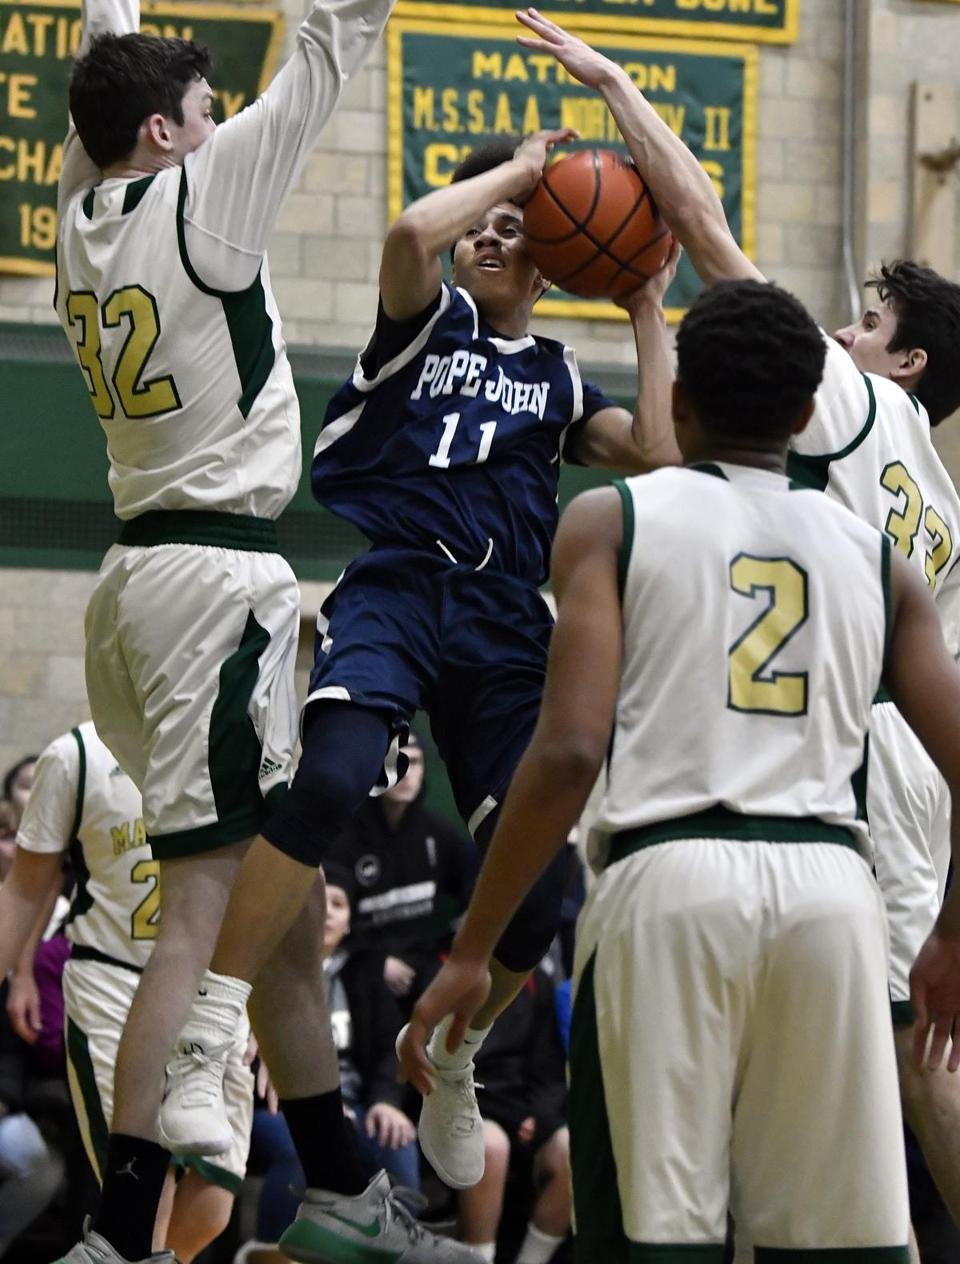 Pope John's Angel Price-Espada finds himself surrounded by Matignon's Conner Byrne (32). Jayson Clayton (2), and Philip Trapani (33)  during their game Friday in Cambridge.